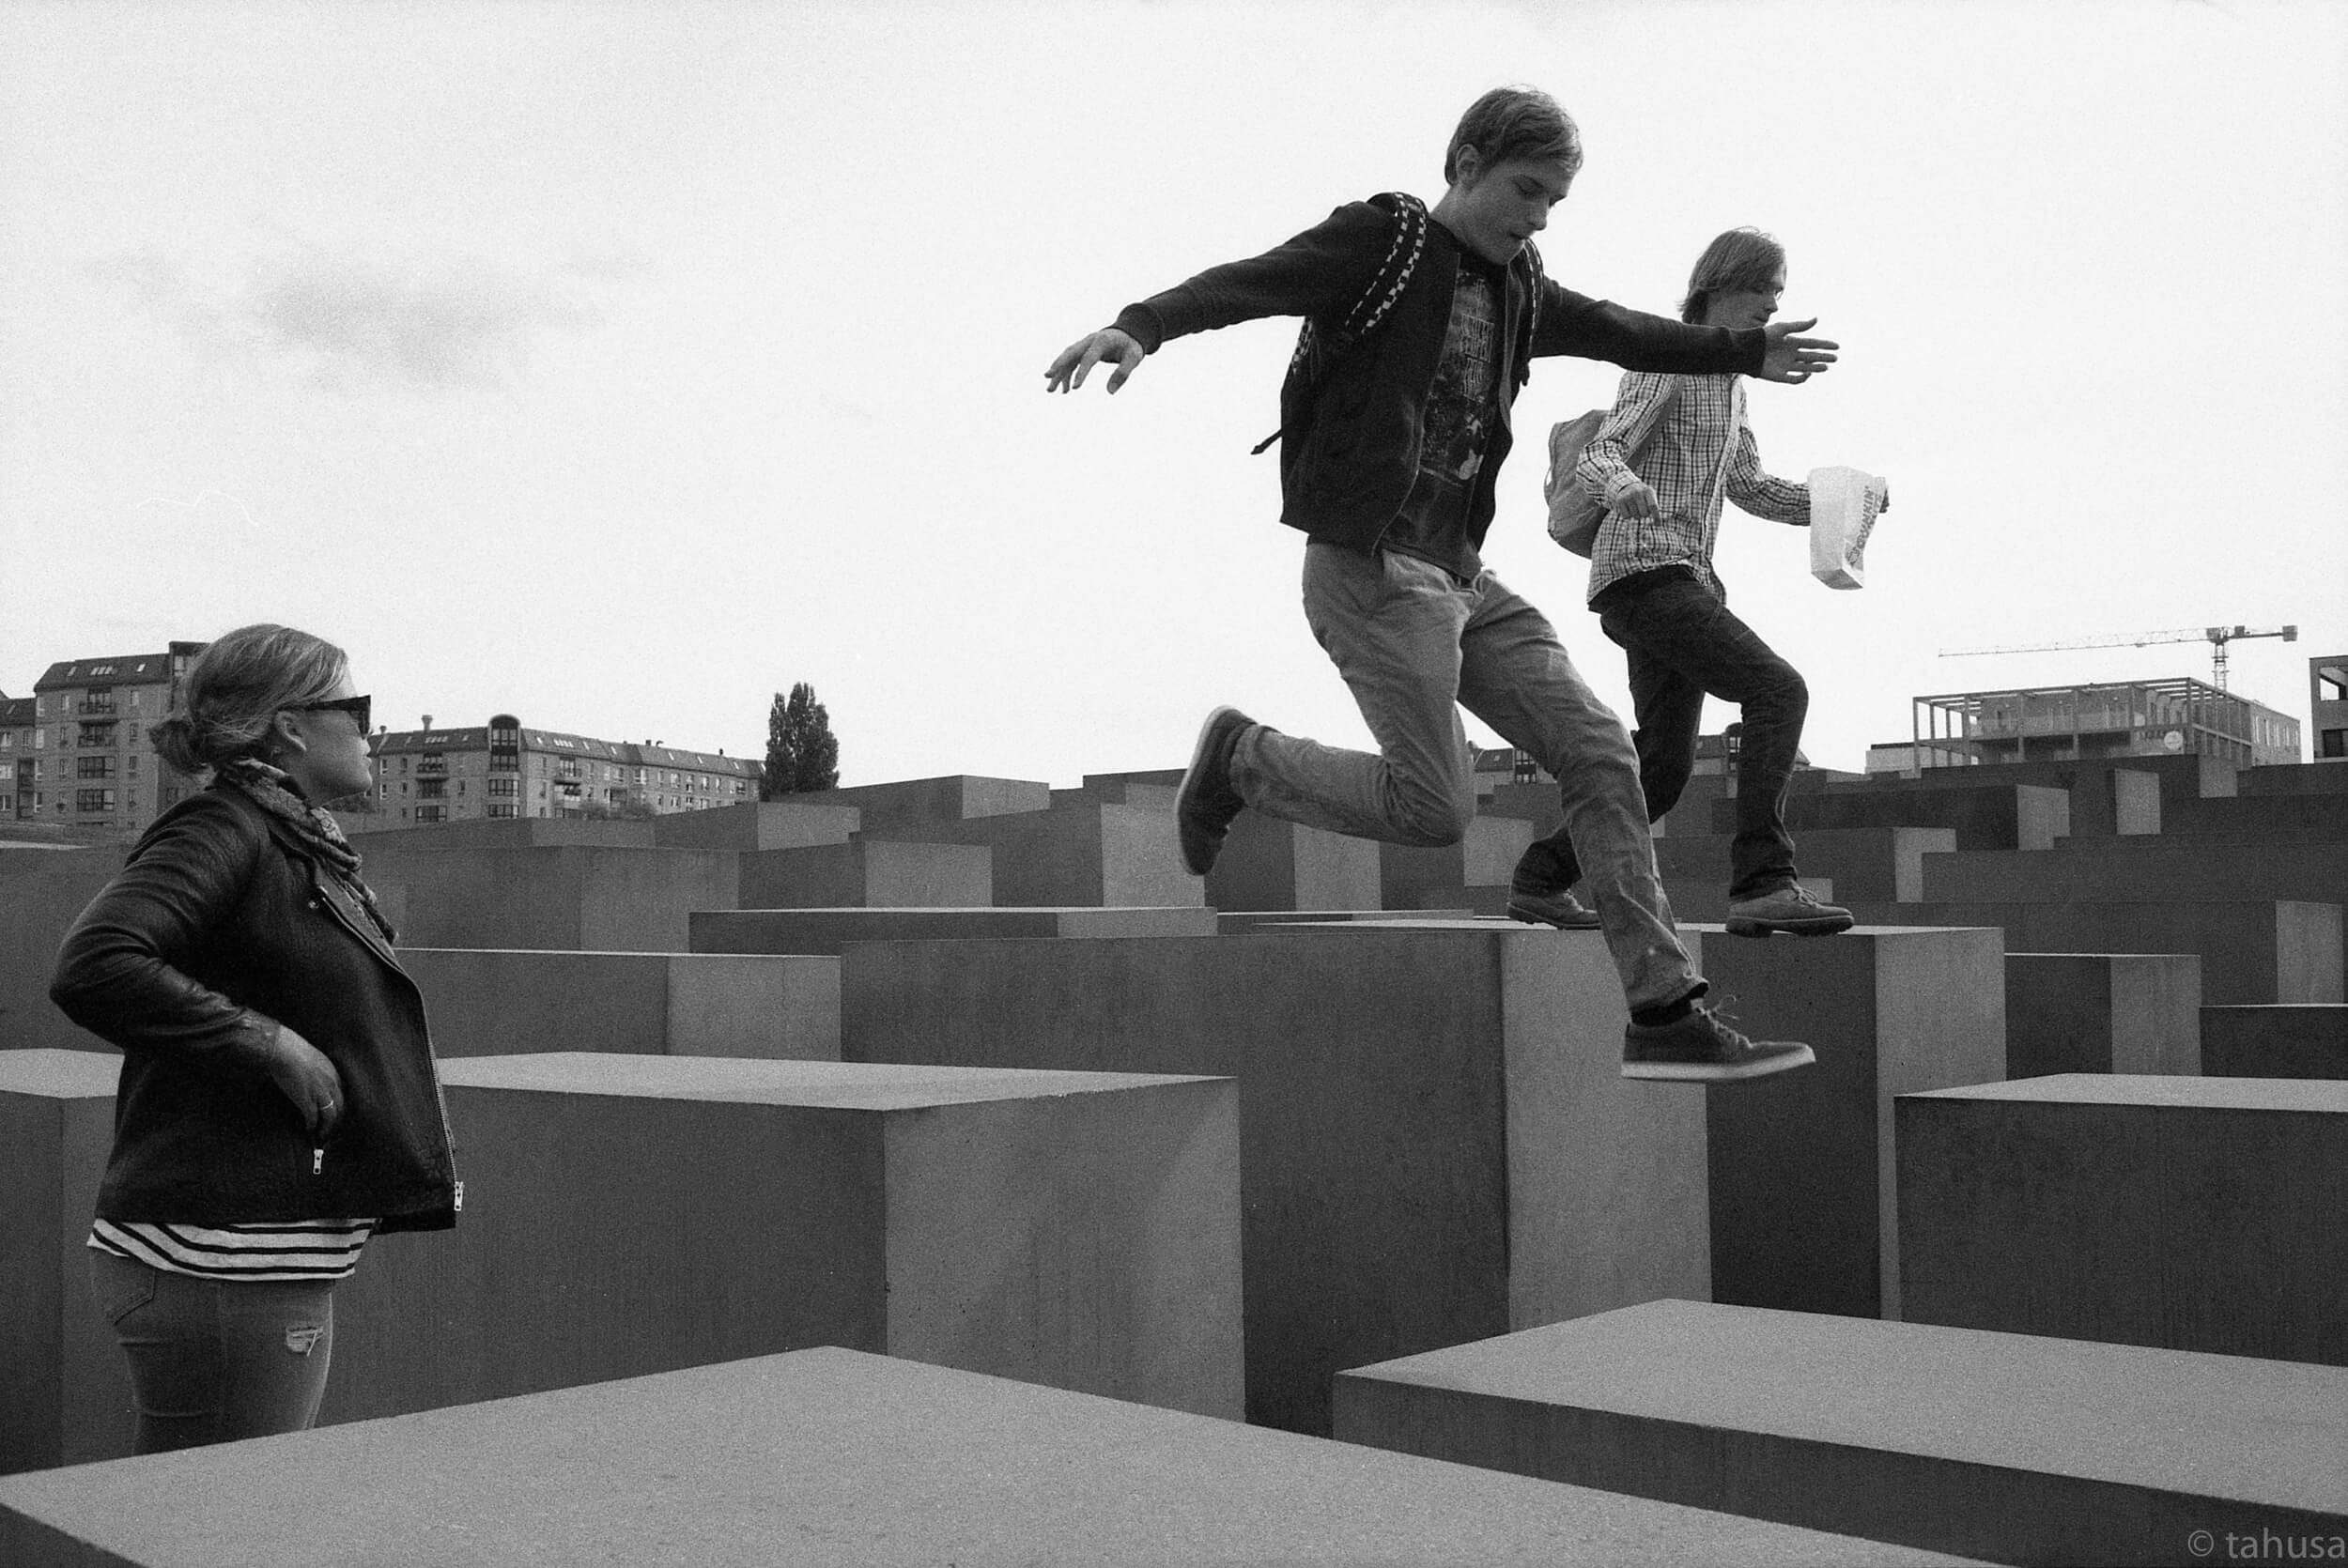 Should-respect-not-jumping-running-in-holocaust-Berlin-Germany-Black-and-white-analog-film-leica-summicron-35mm-f2-35-v1-Kentmere-400-iso400-film-review-snapshot